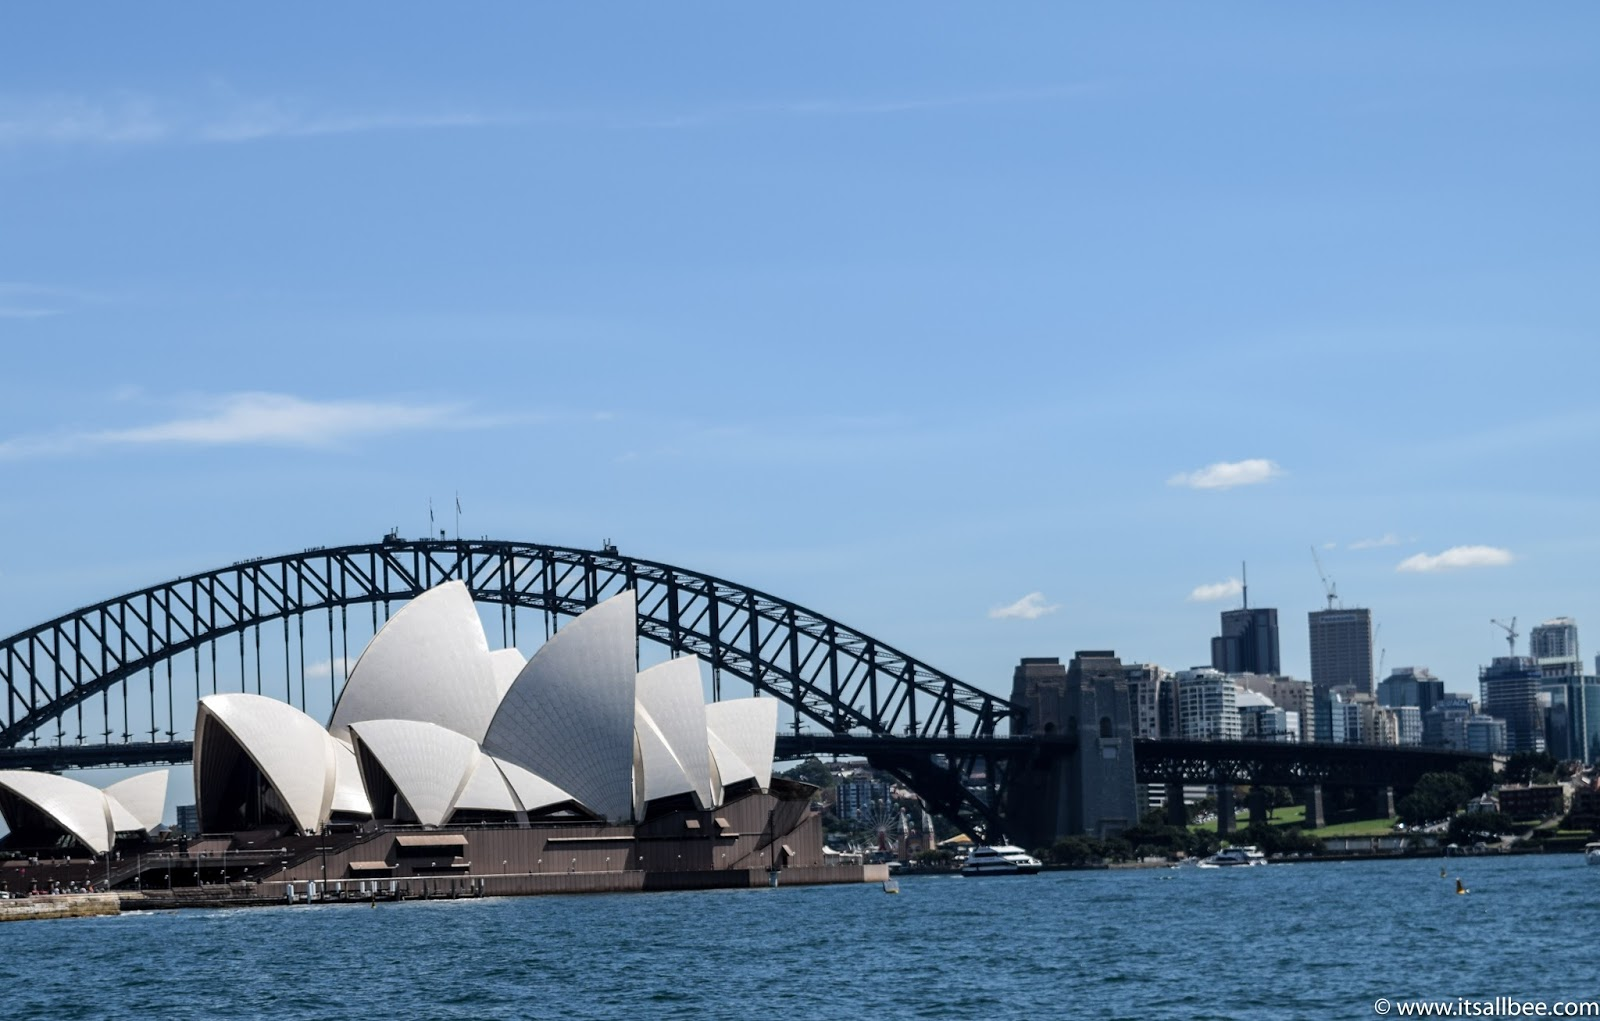 Top 10 Things To Do In Sydney Australia - Places To Visit & Where To Stay